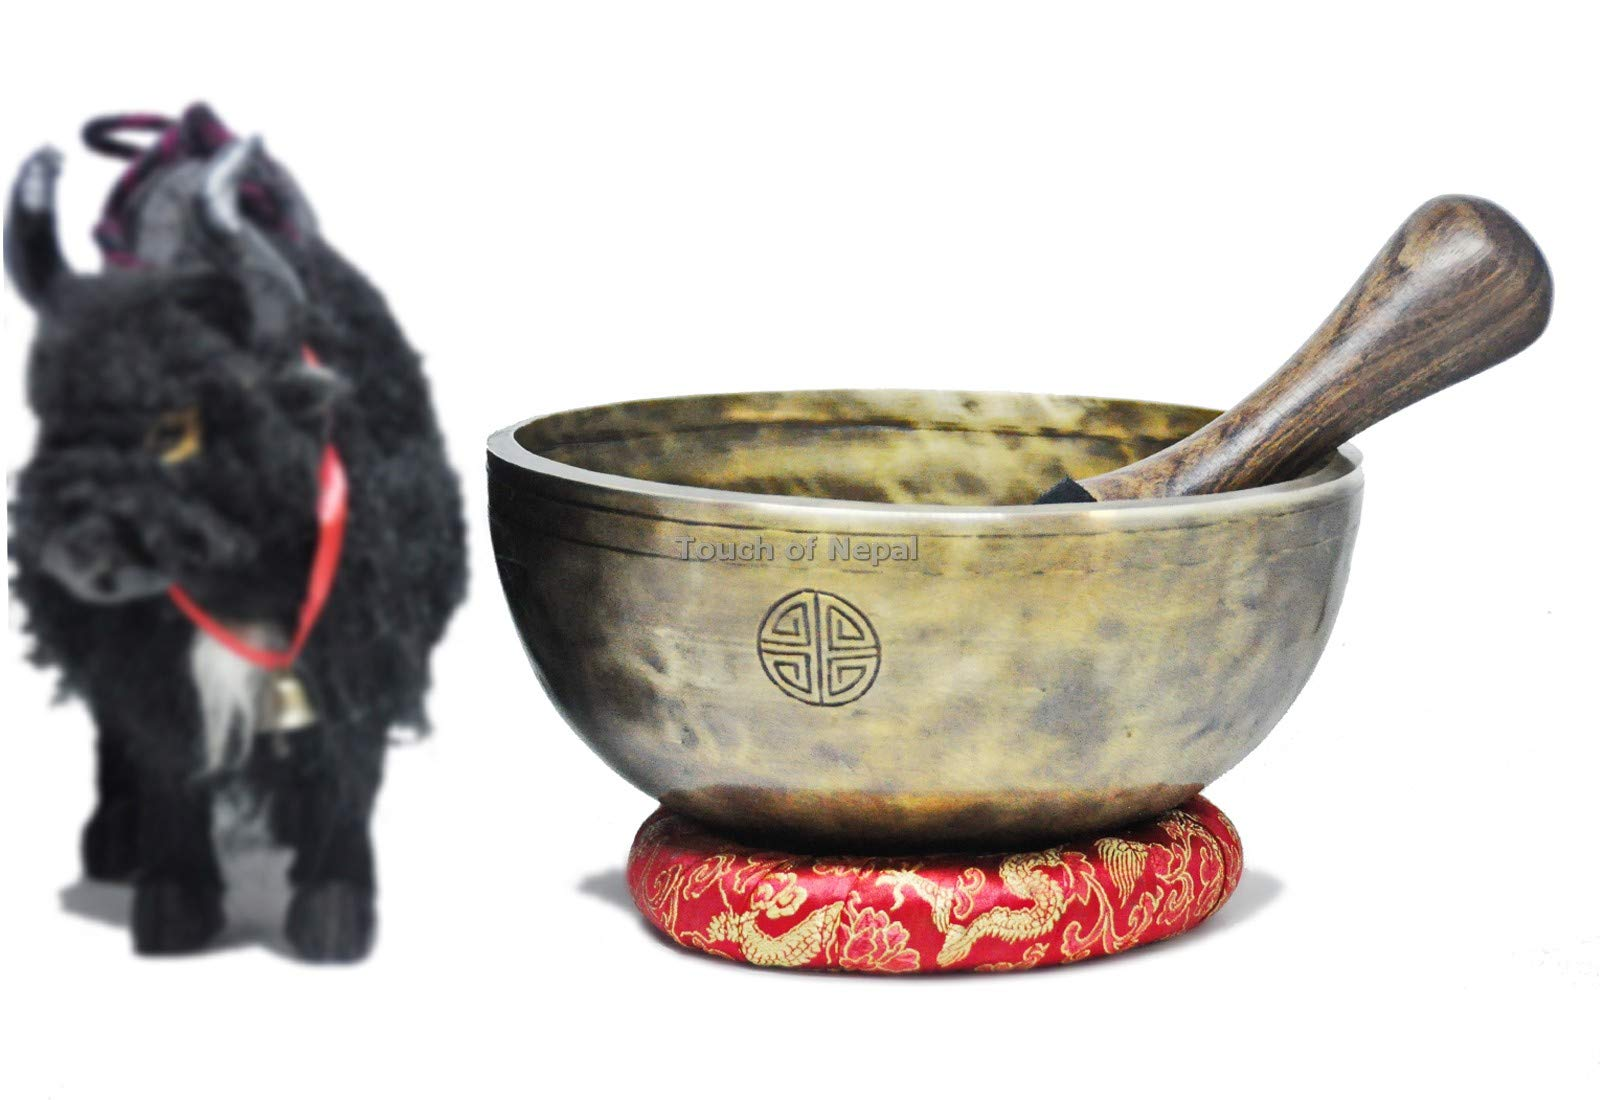 Full moon singing bowl-8 inches Diameter Tibetan singing bowl from Nepal by Touch of Nepal